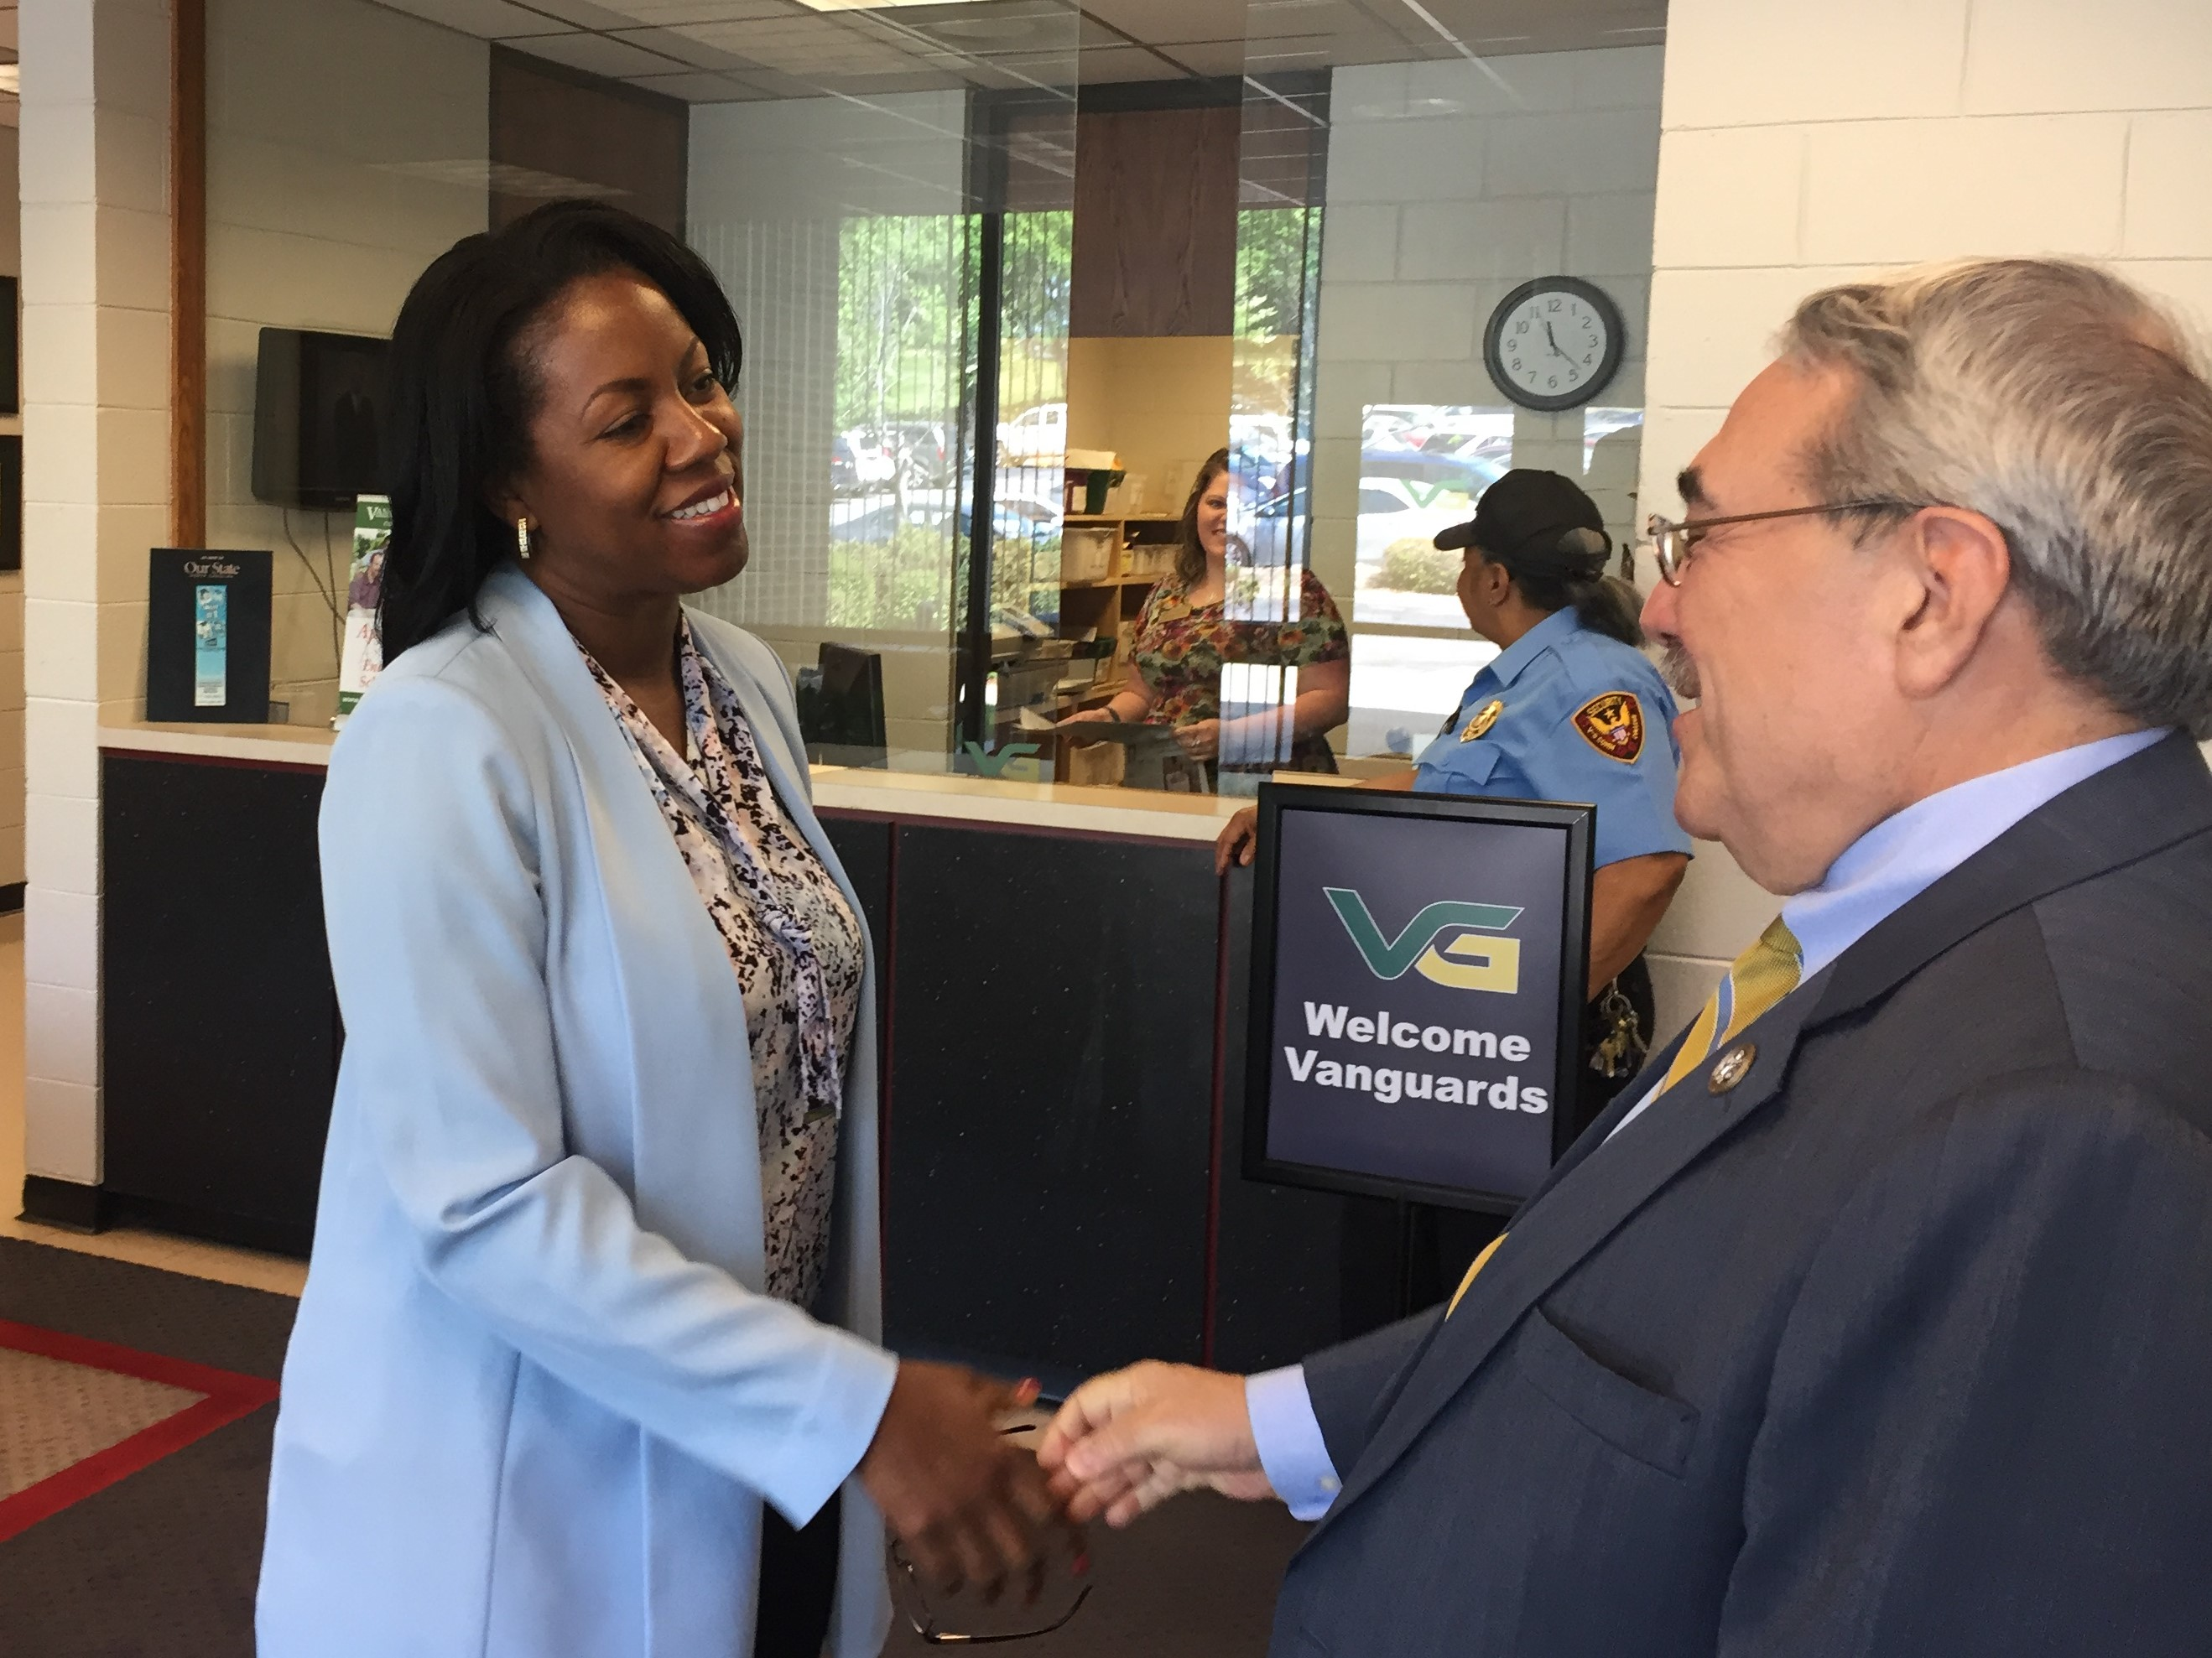 Vance-Granville Community College President Stelphanie Williams greets Congressman Butterfield during a campus visit